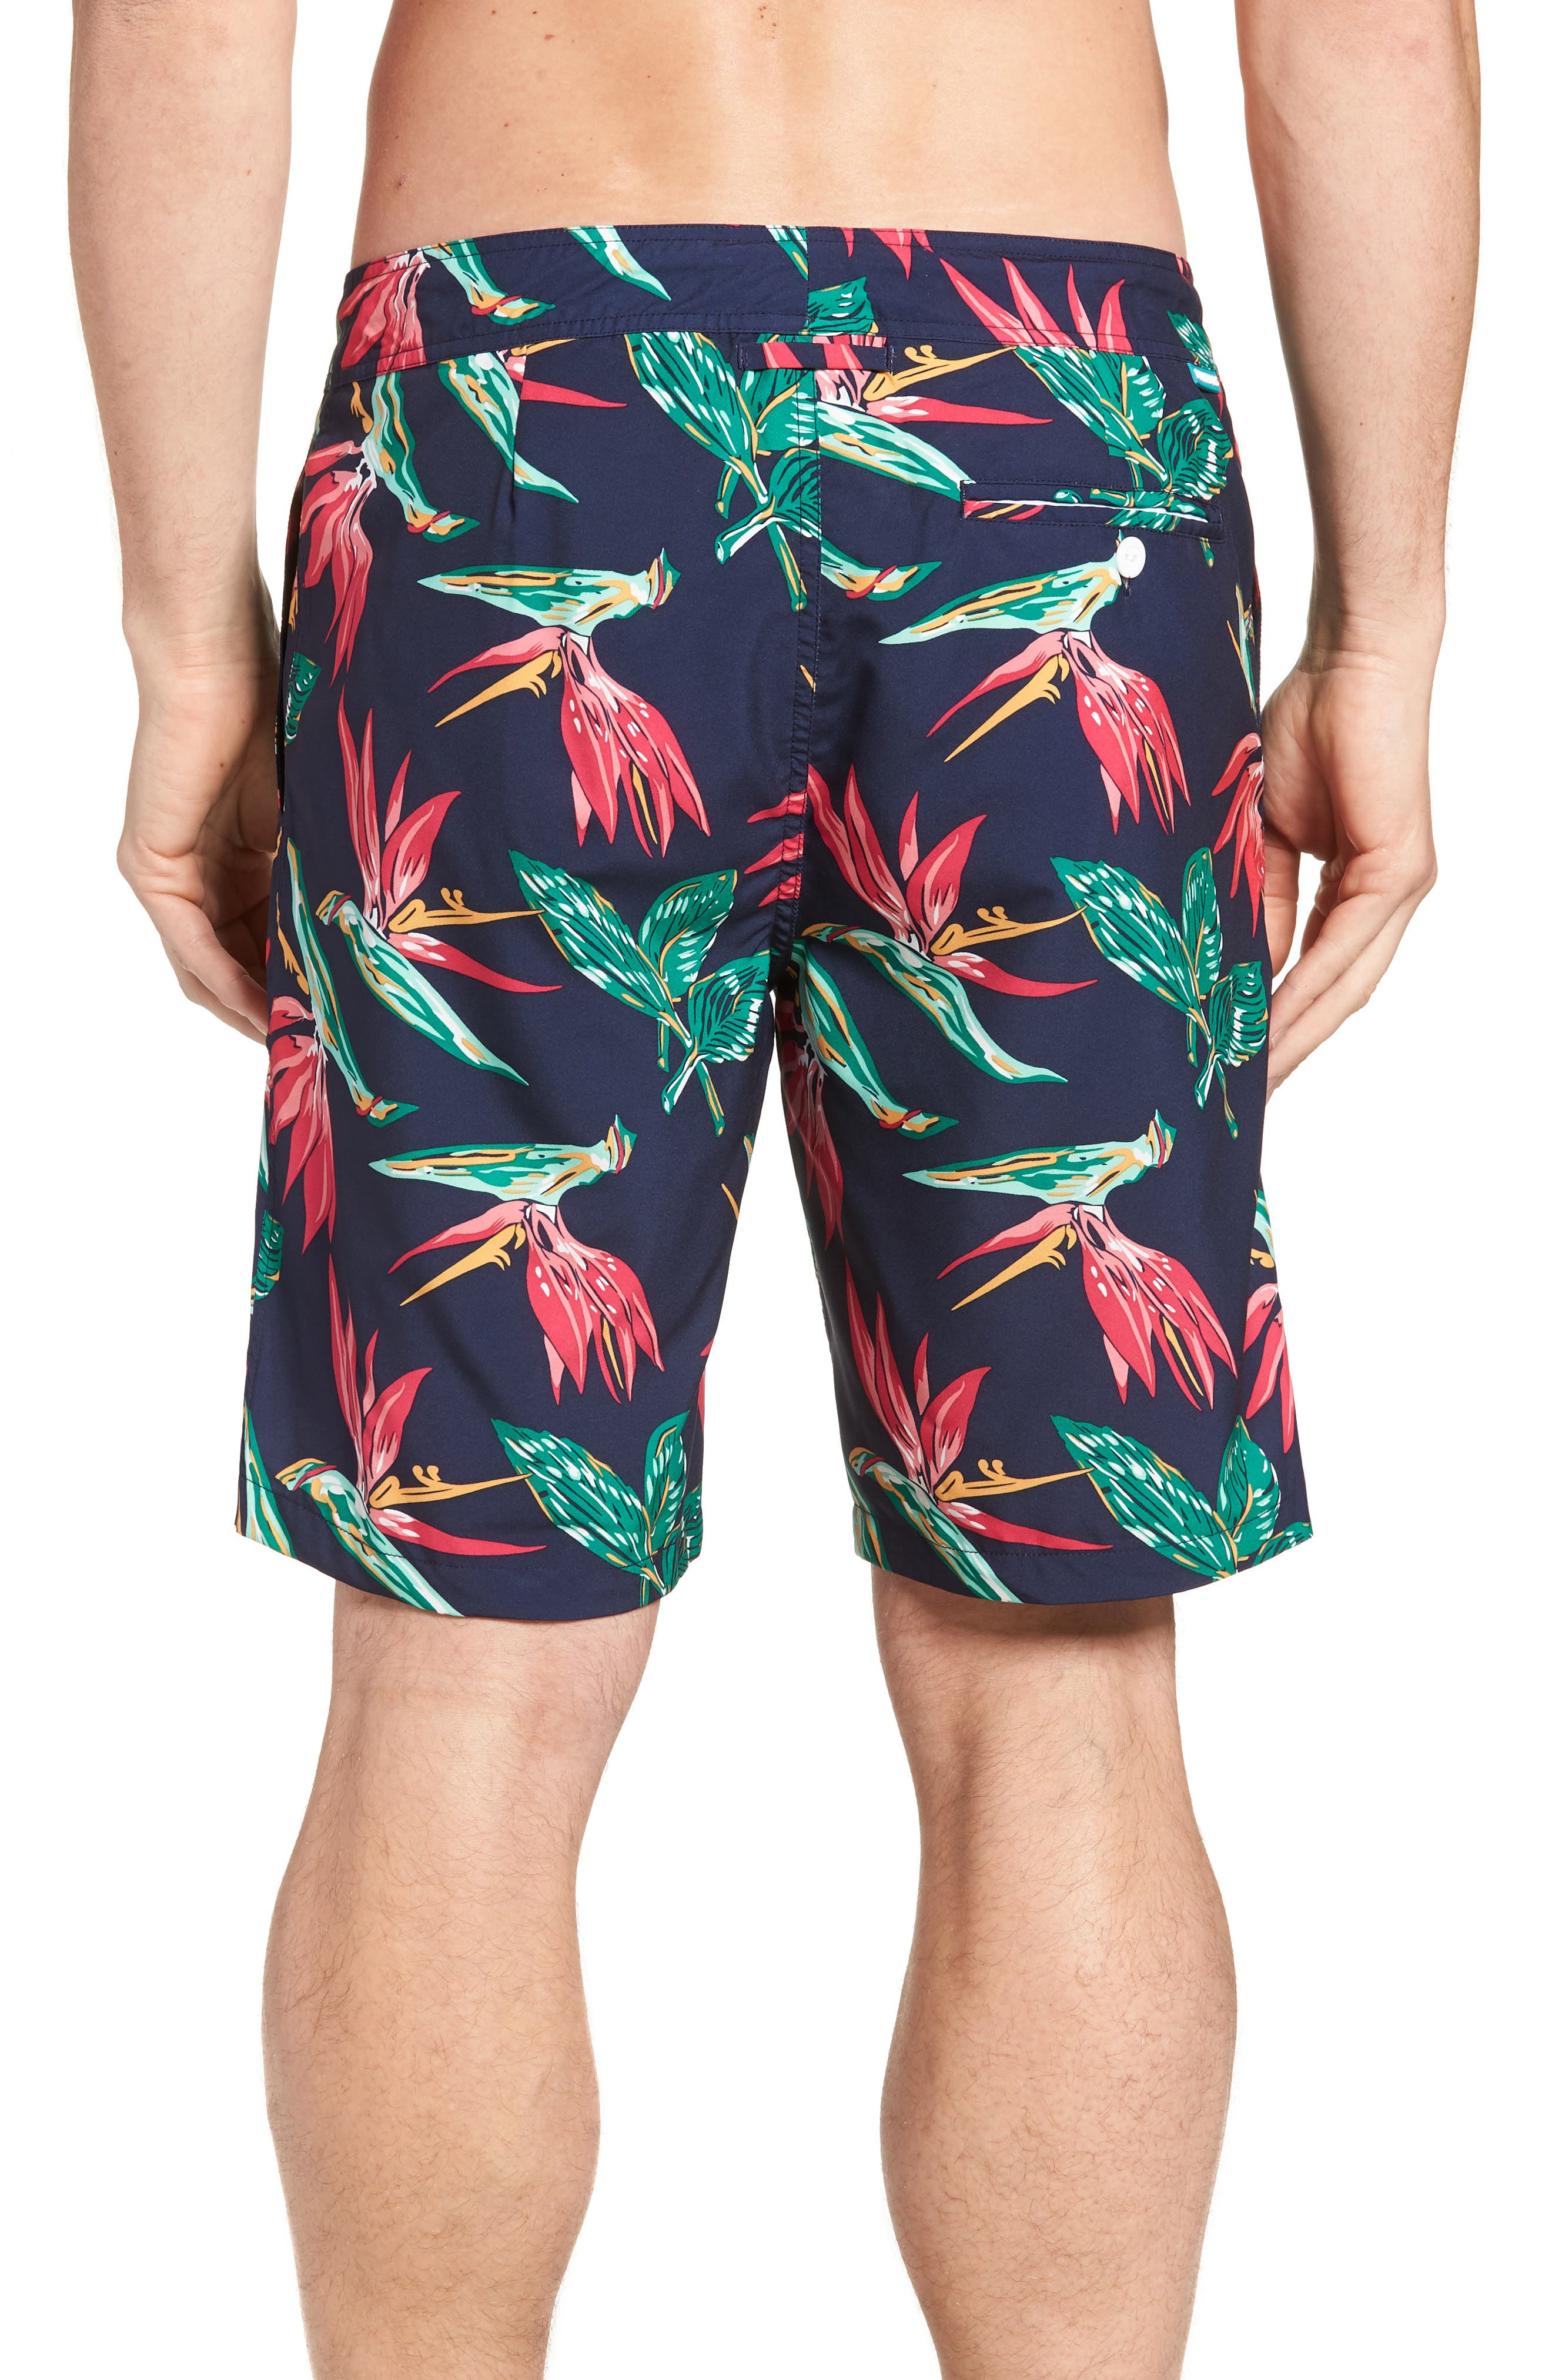 Banzai 9-Inch Swim Trunks,                             Alternate thumbnail 2, color,                             BIRD OF PARADISE